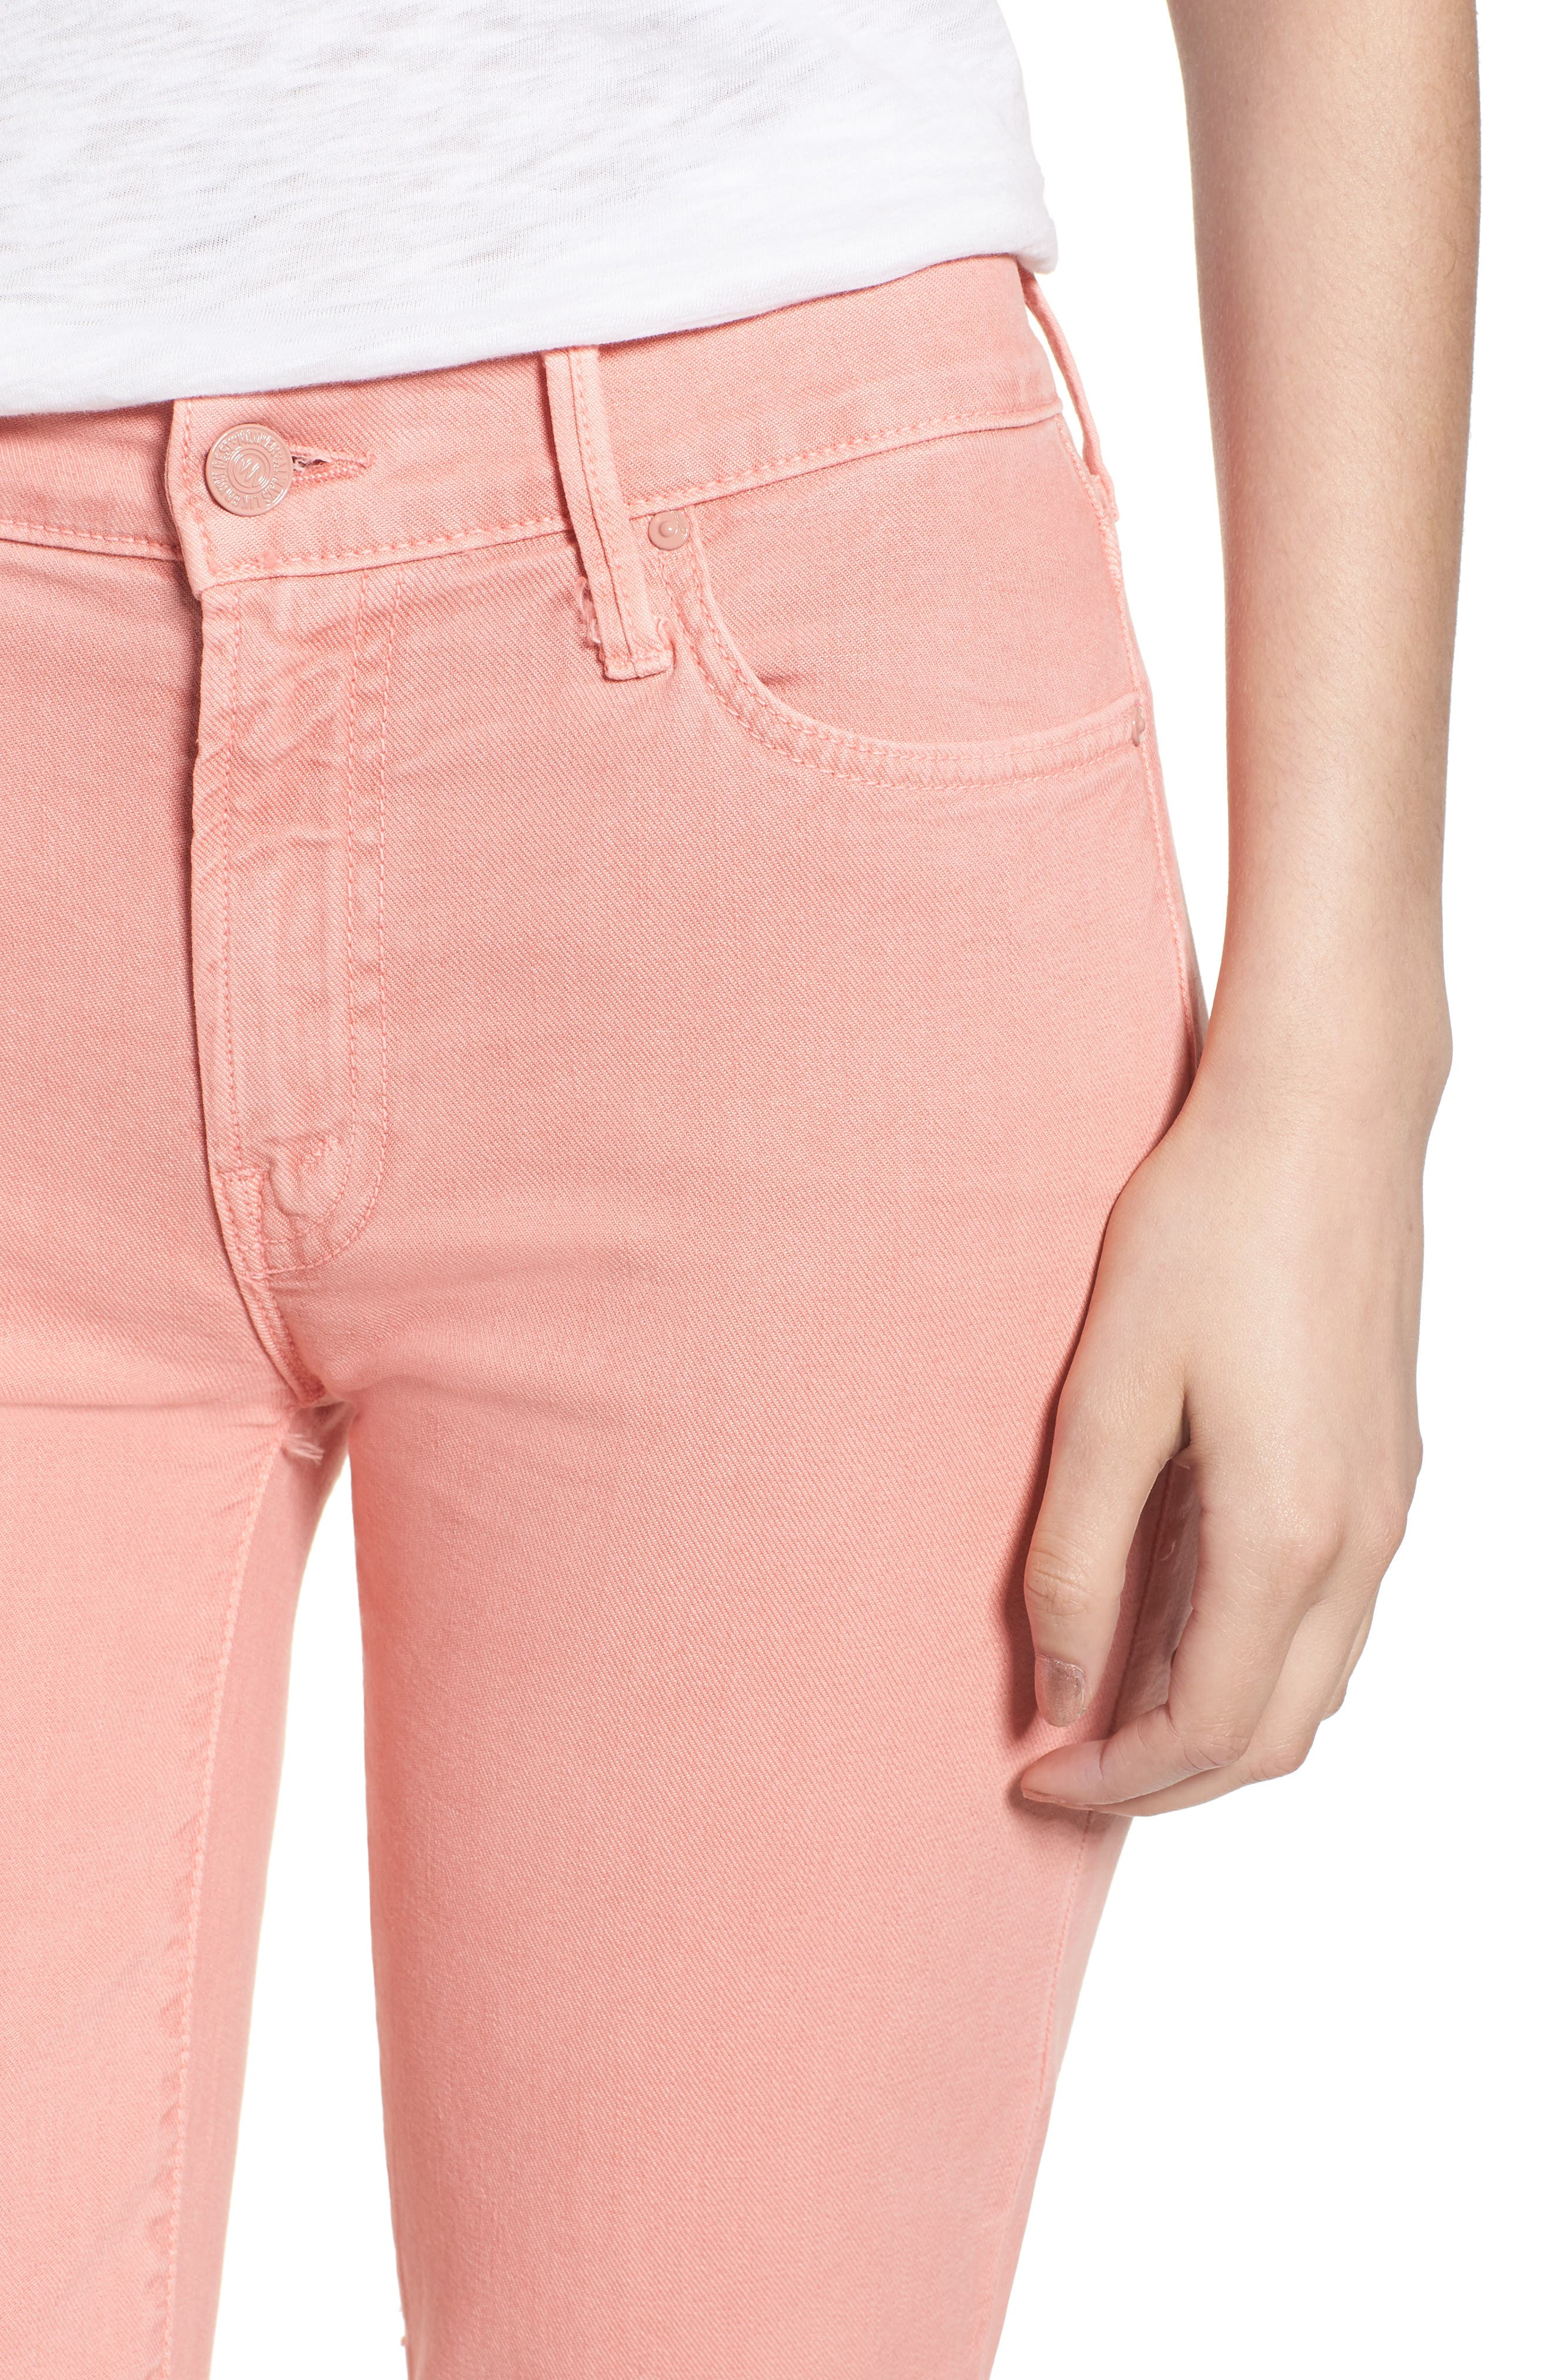 The Rascal Ankle Snippet Jeans,                             Alternate thumbnail 4, color,                             690